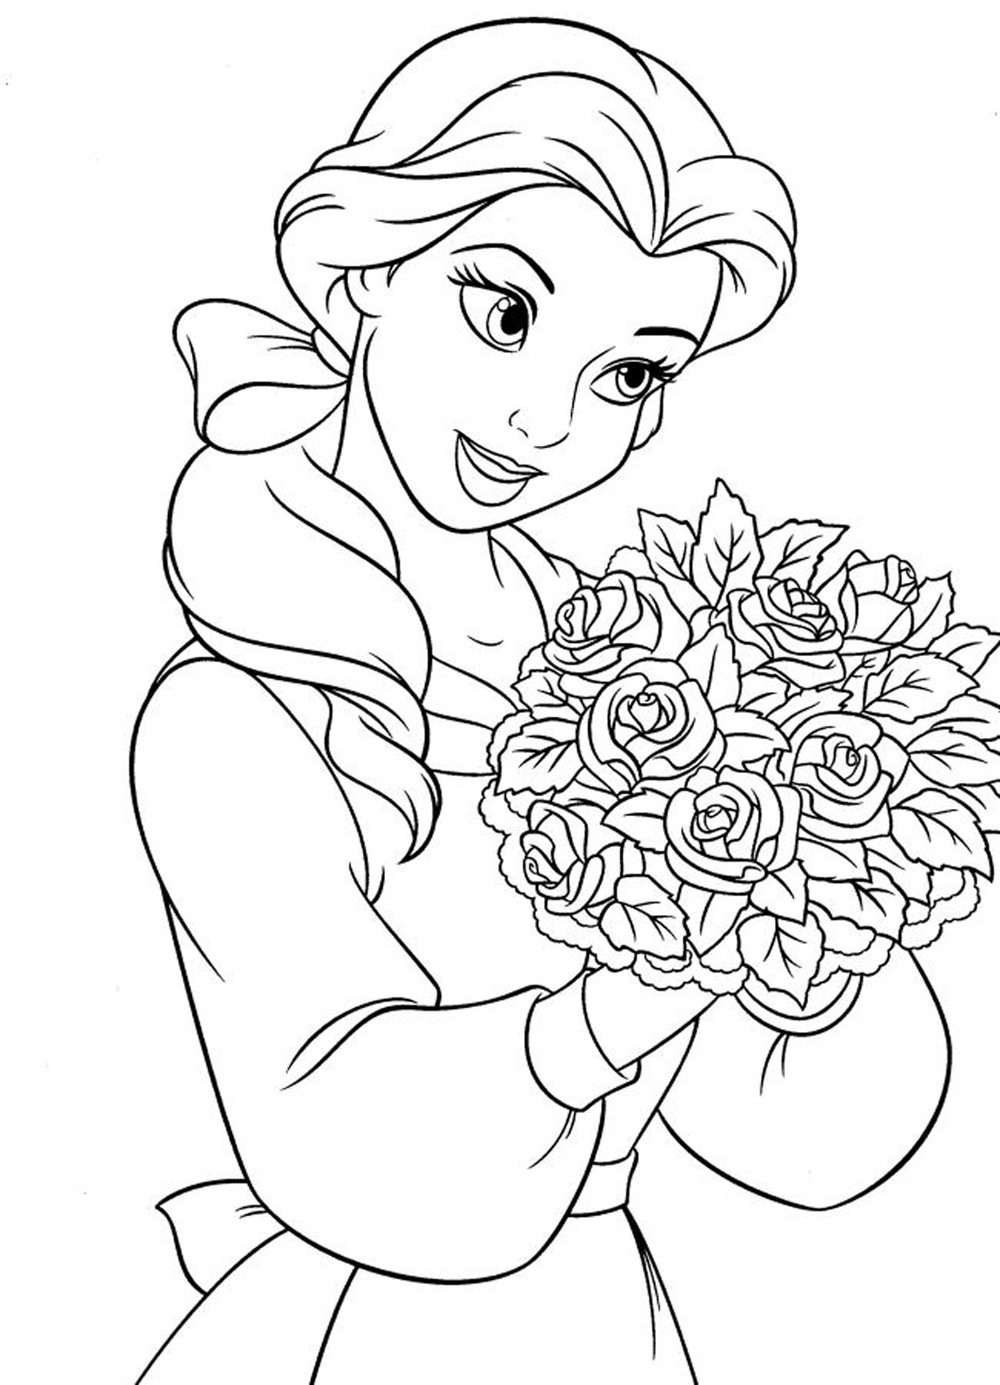 coloring pages disney - photo#11